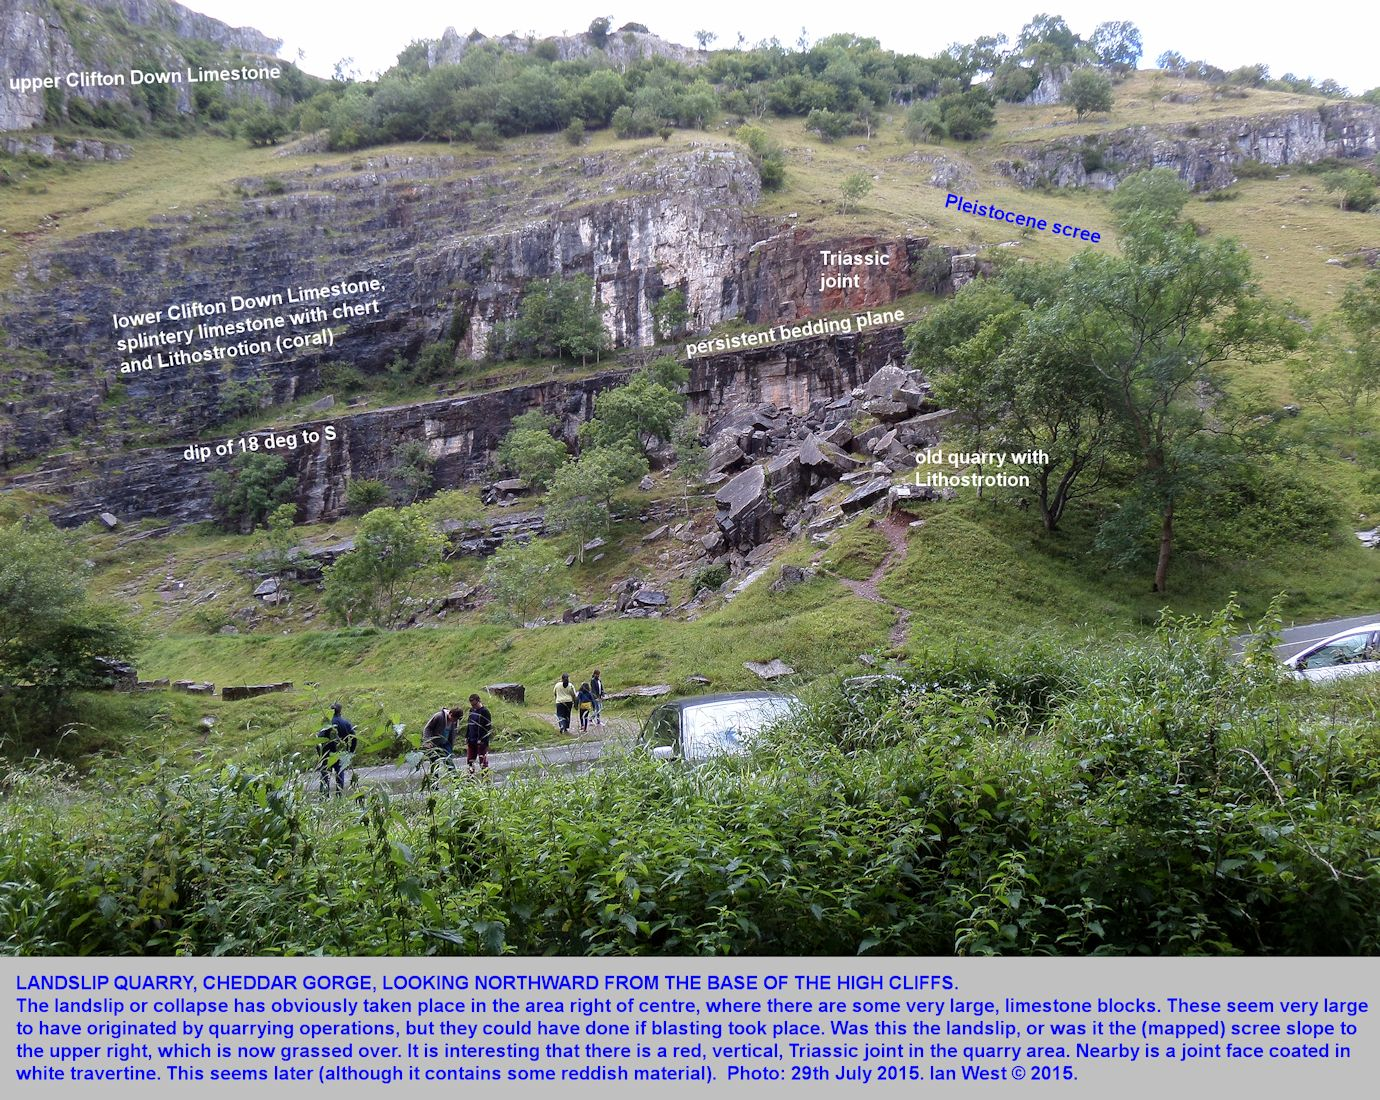 A general view of Landslip Quarry, Cheddar Gorge, Mendip Hills, Somerset, 20th July 2015